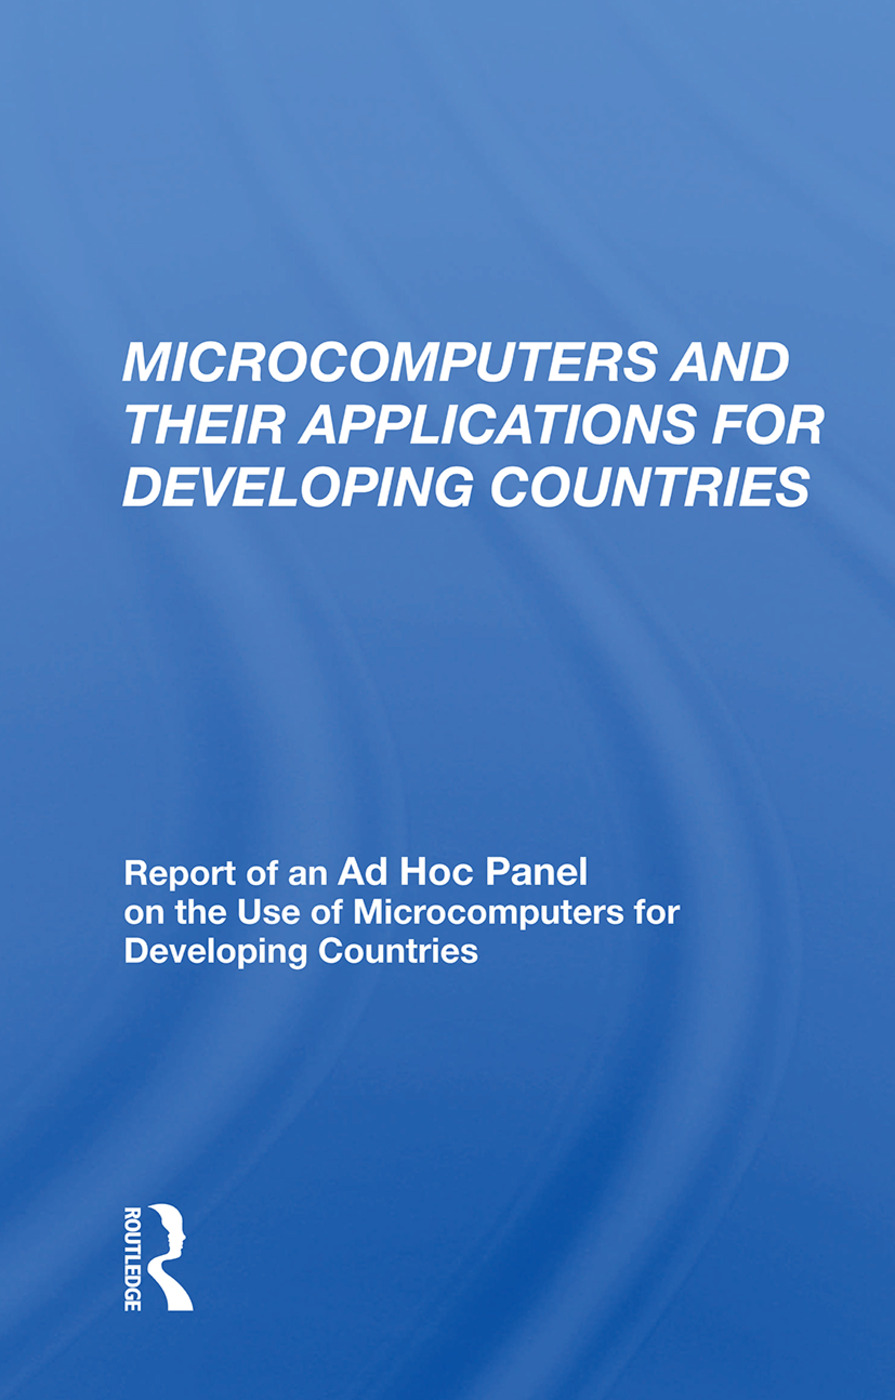 Microcomputers: Opportunities and Impacts